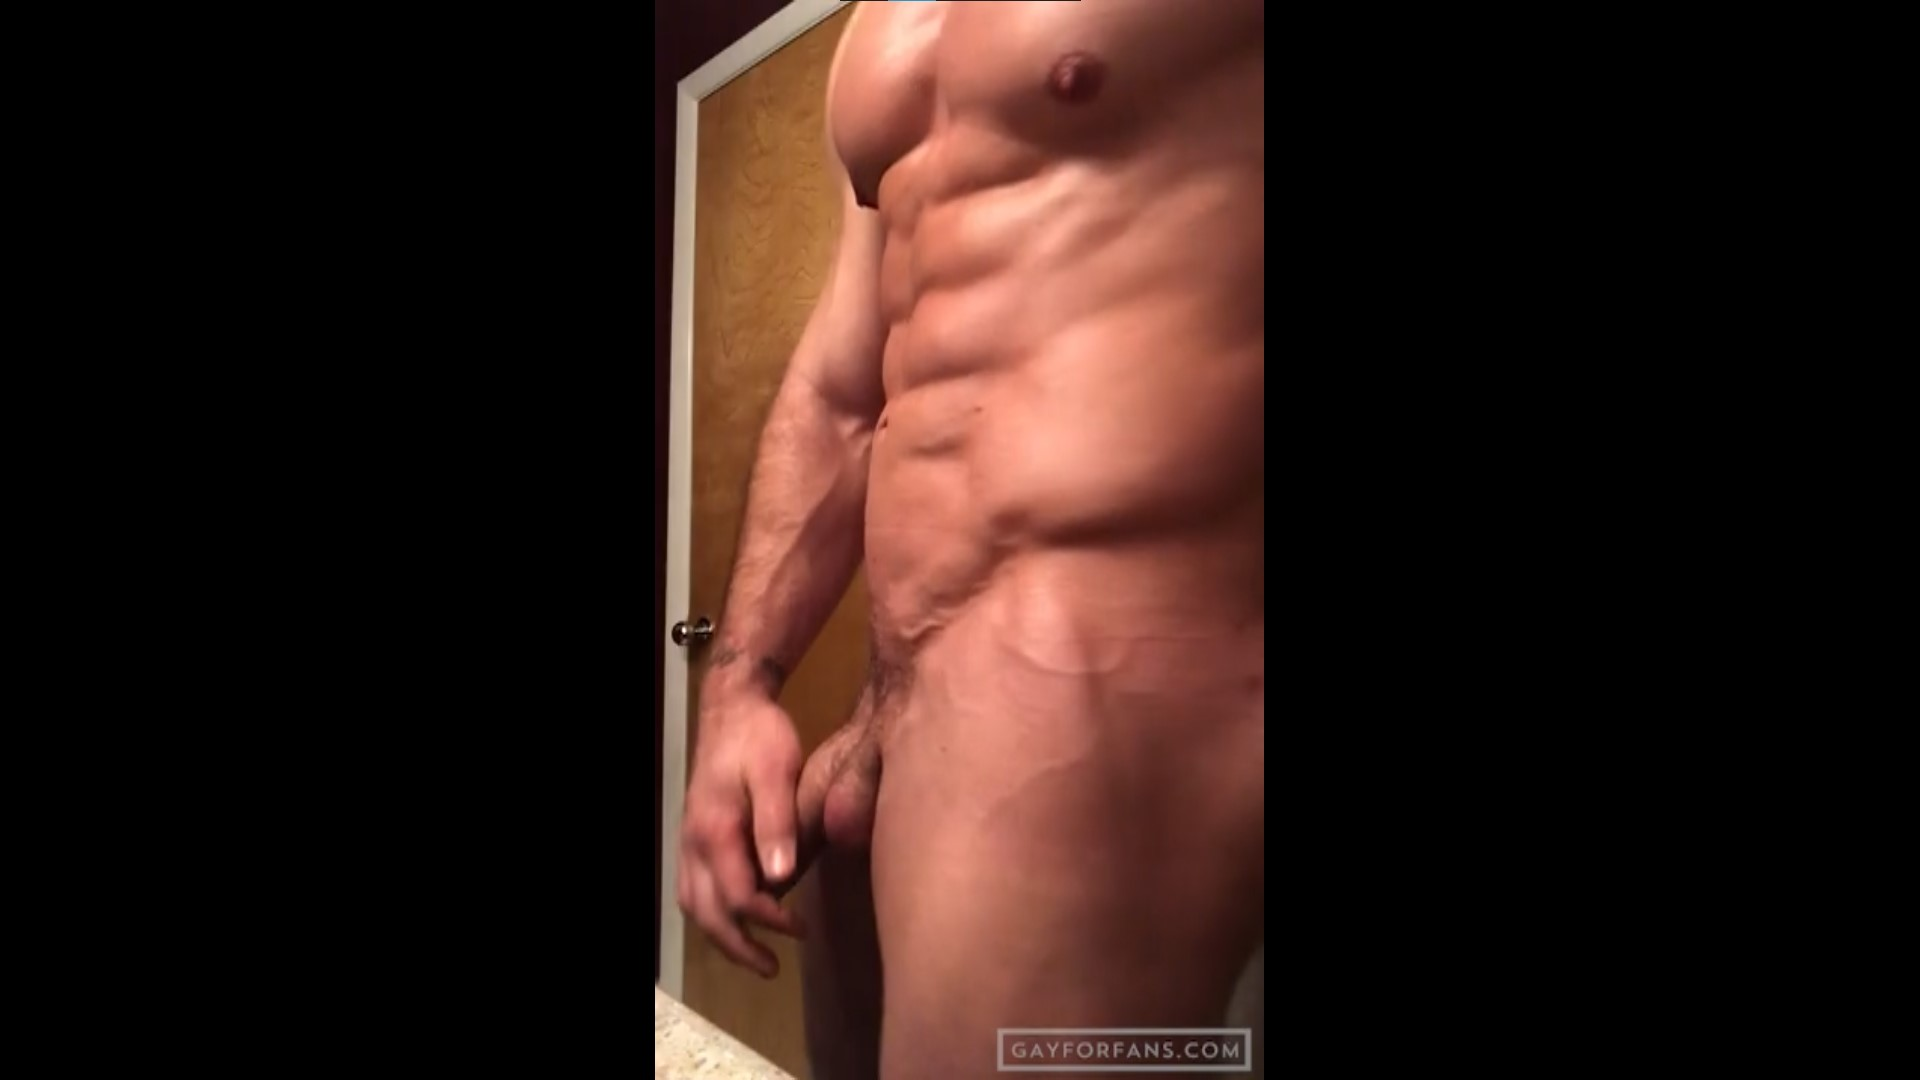 Showing off my muscles and stroking my cock - PaddyCakesUSA